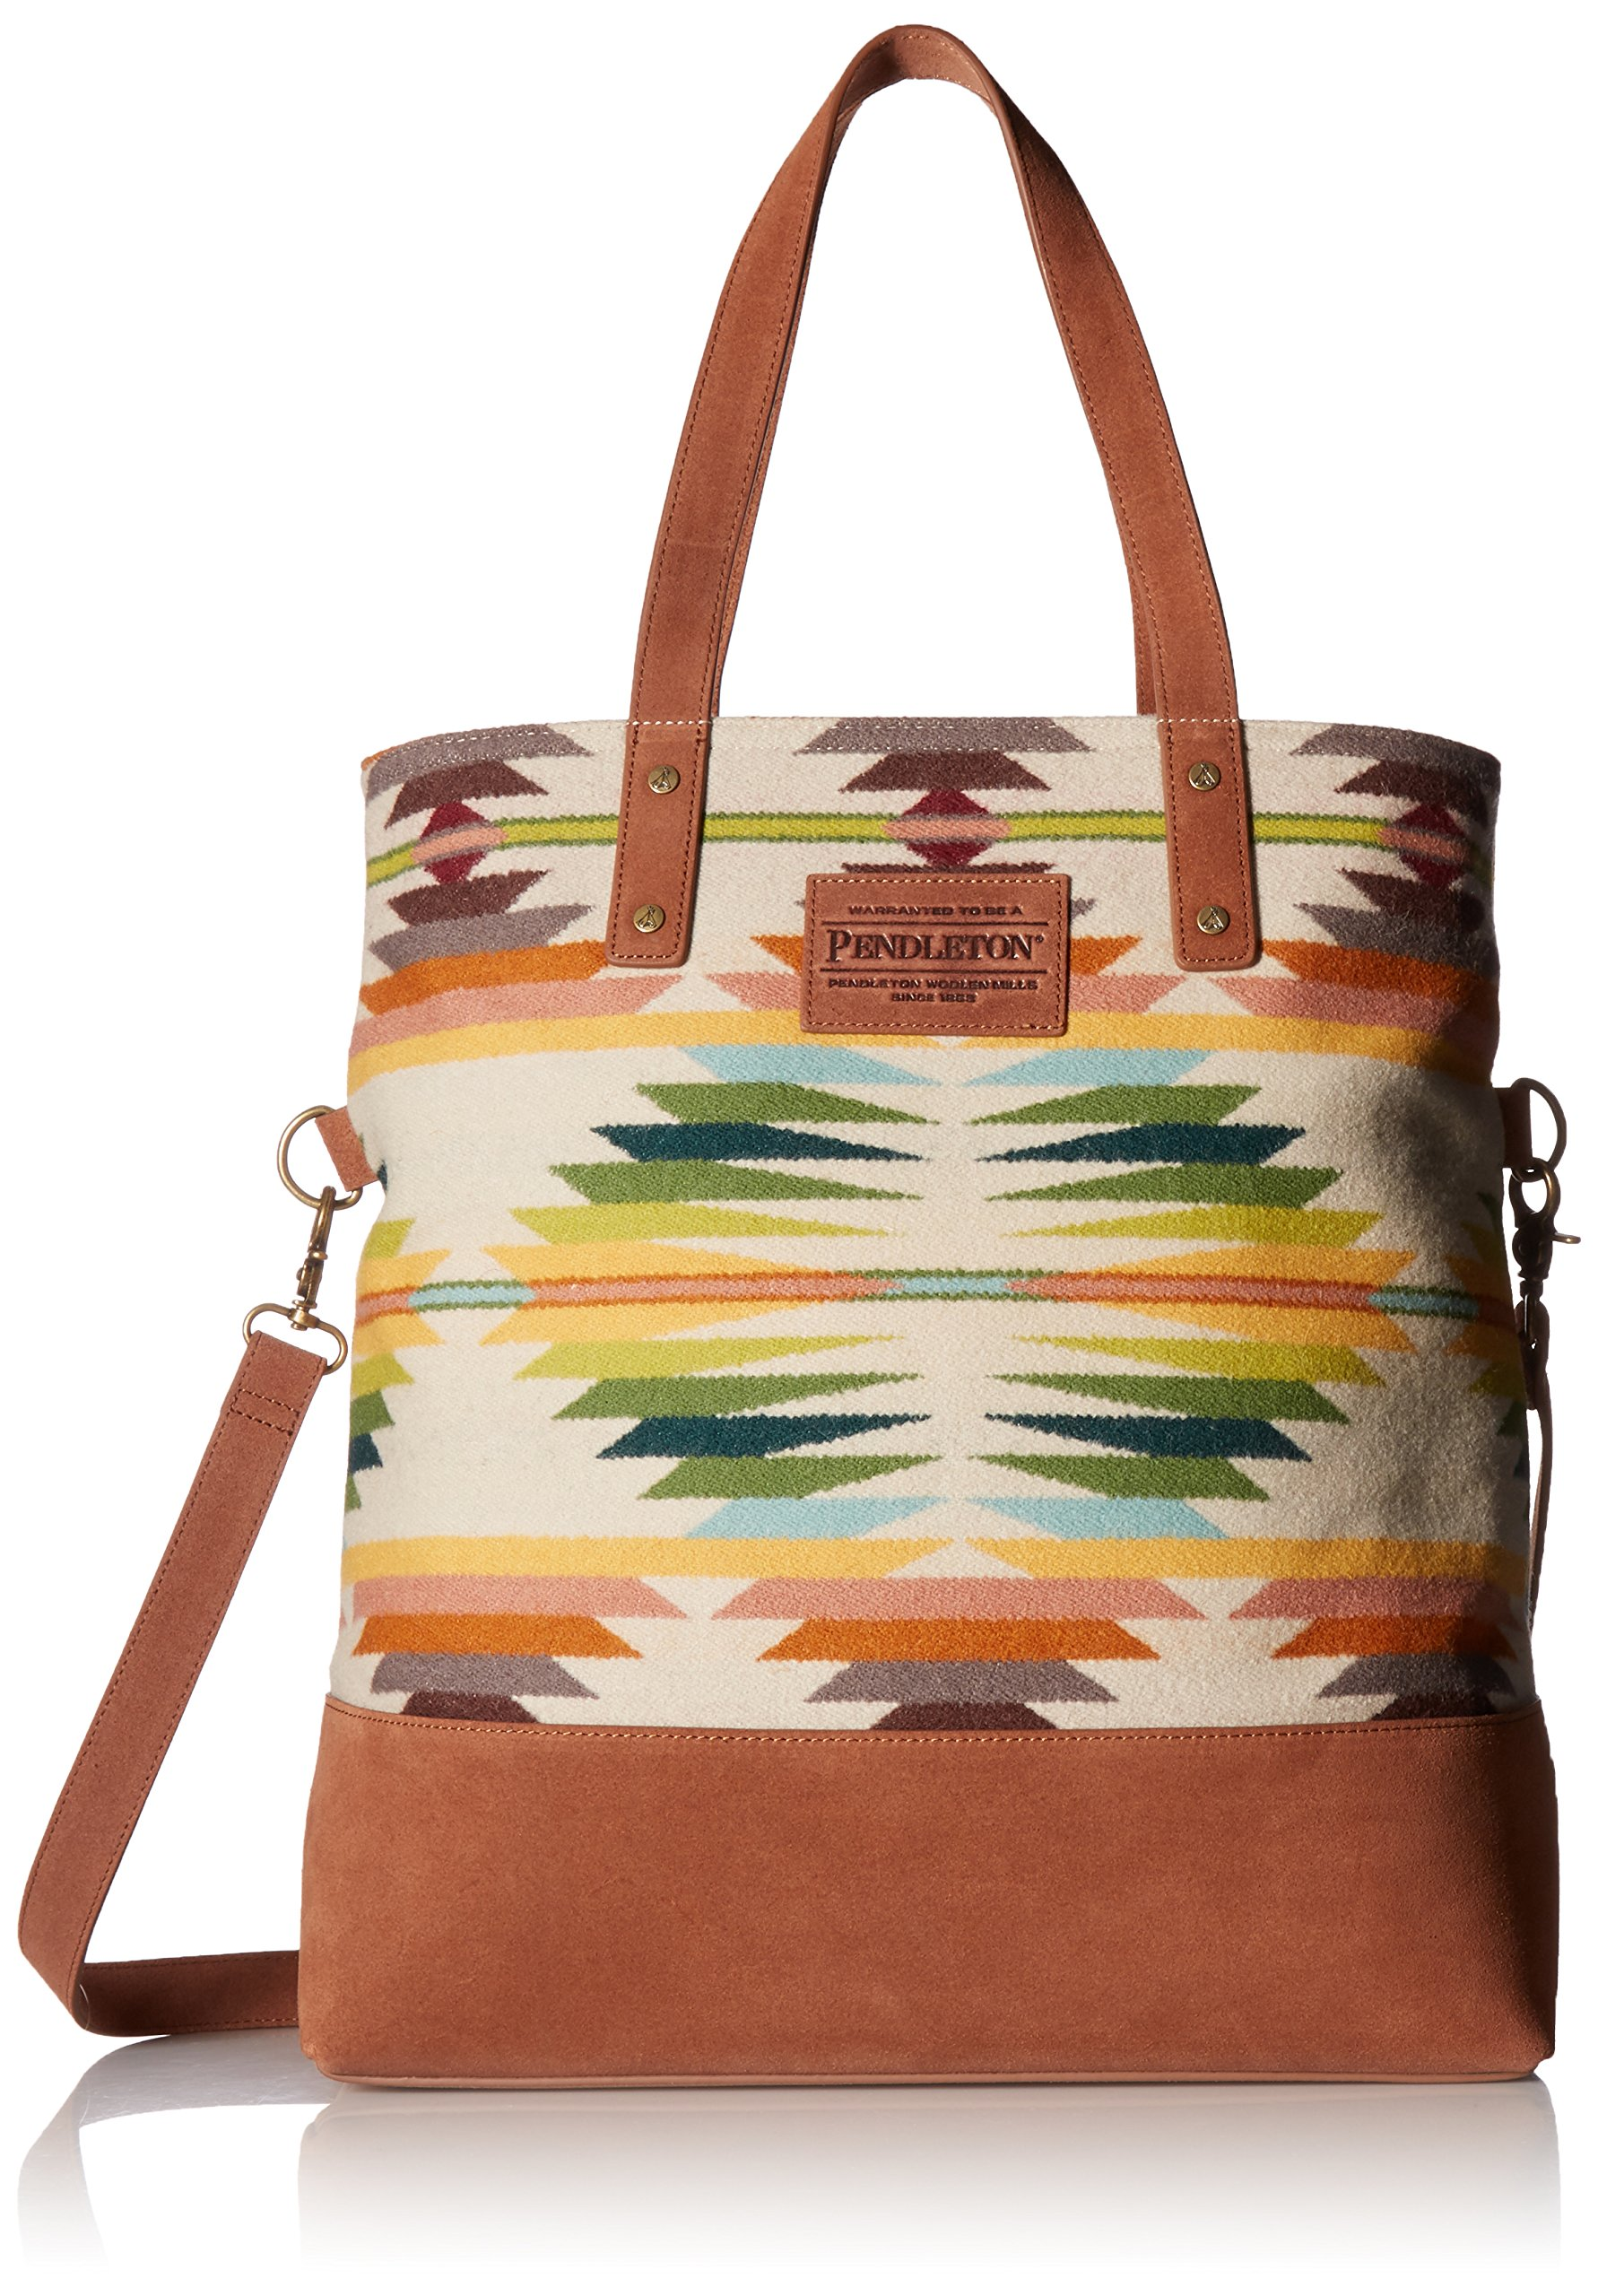 Pendleton Women's Long Tote Accessory, -falcon cove, One Size